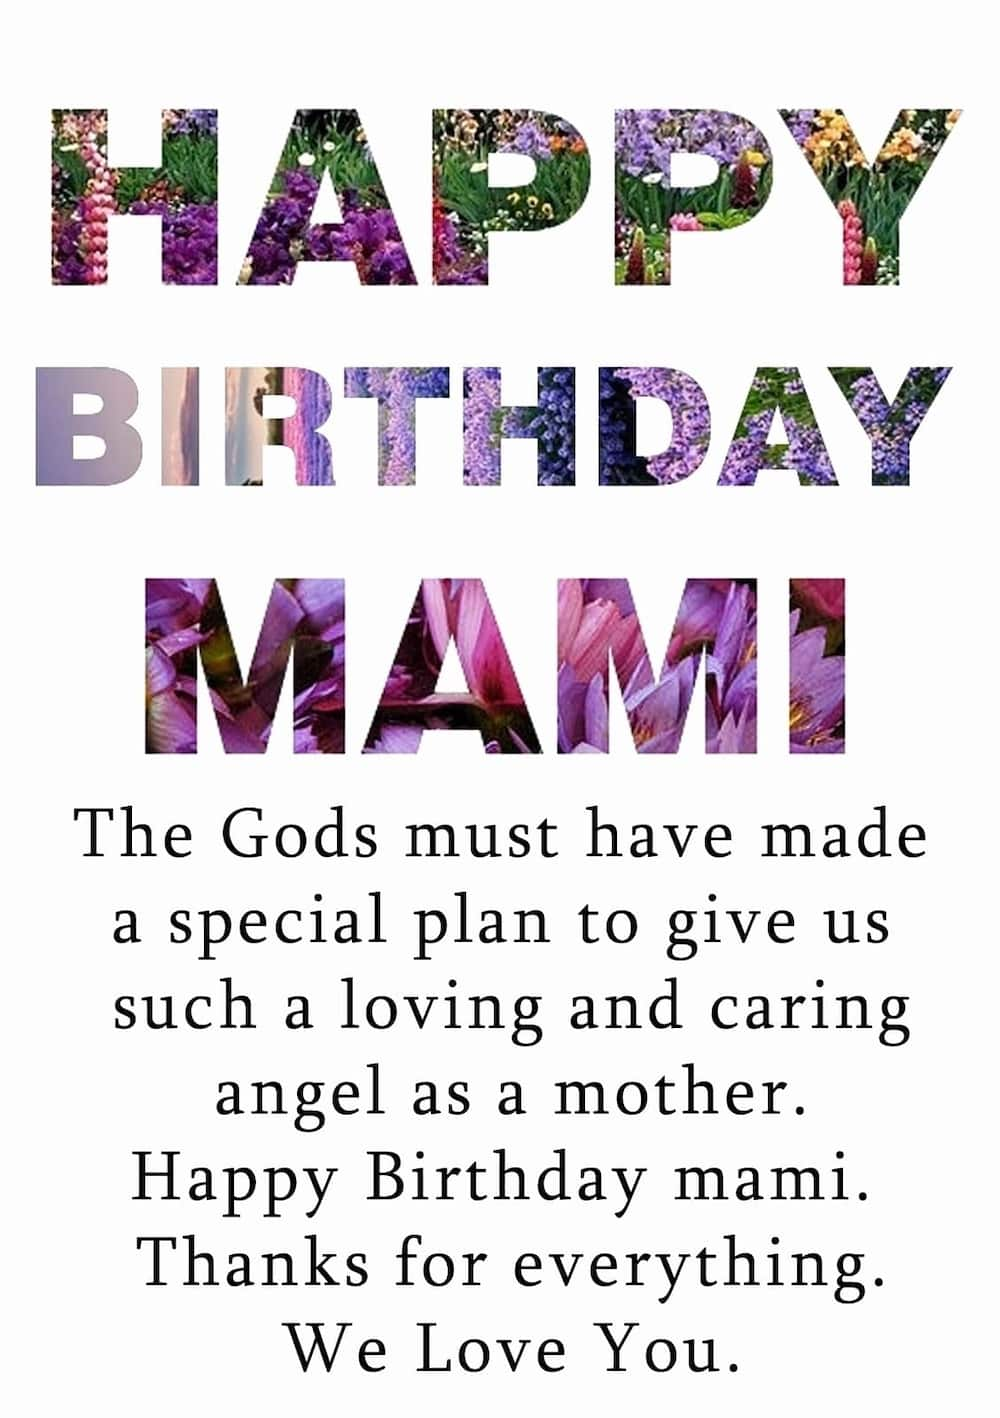 Sweet happy birthday mom messages and quotes ▷ Tuko.co.ke